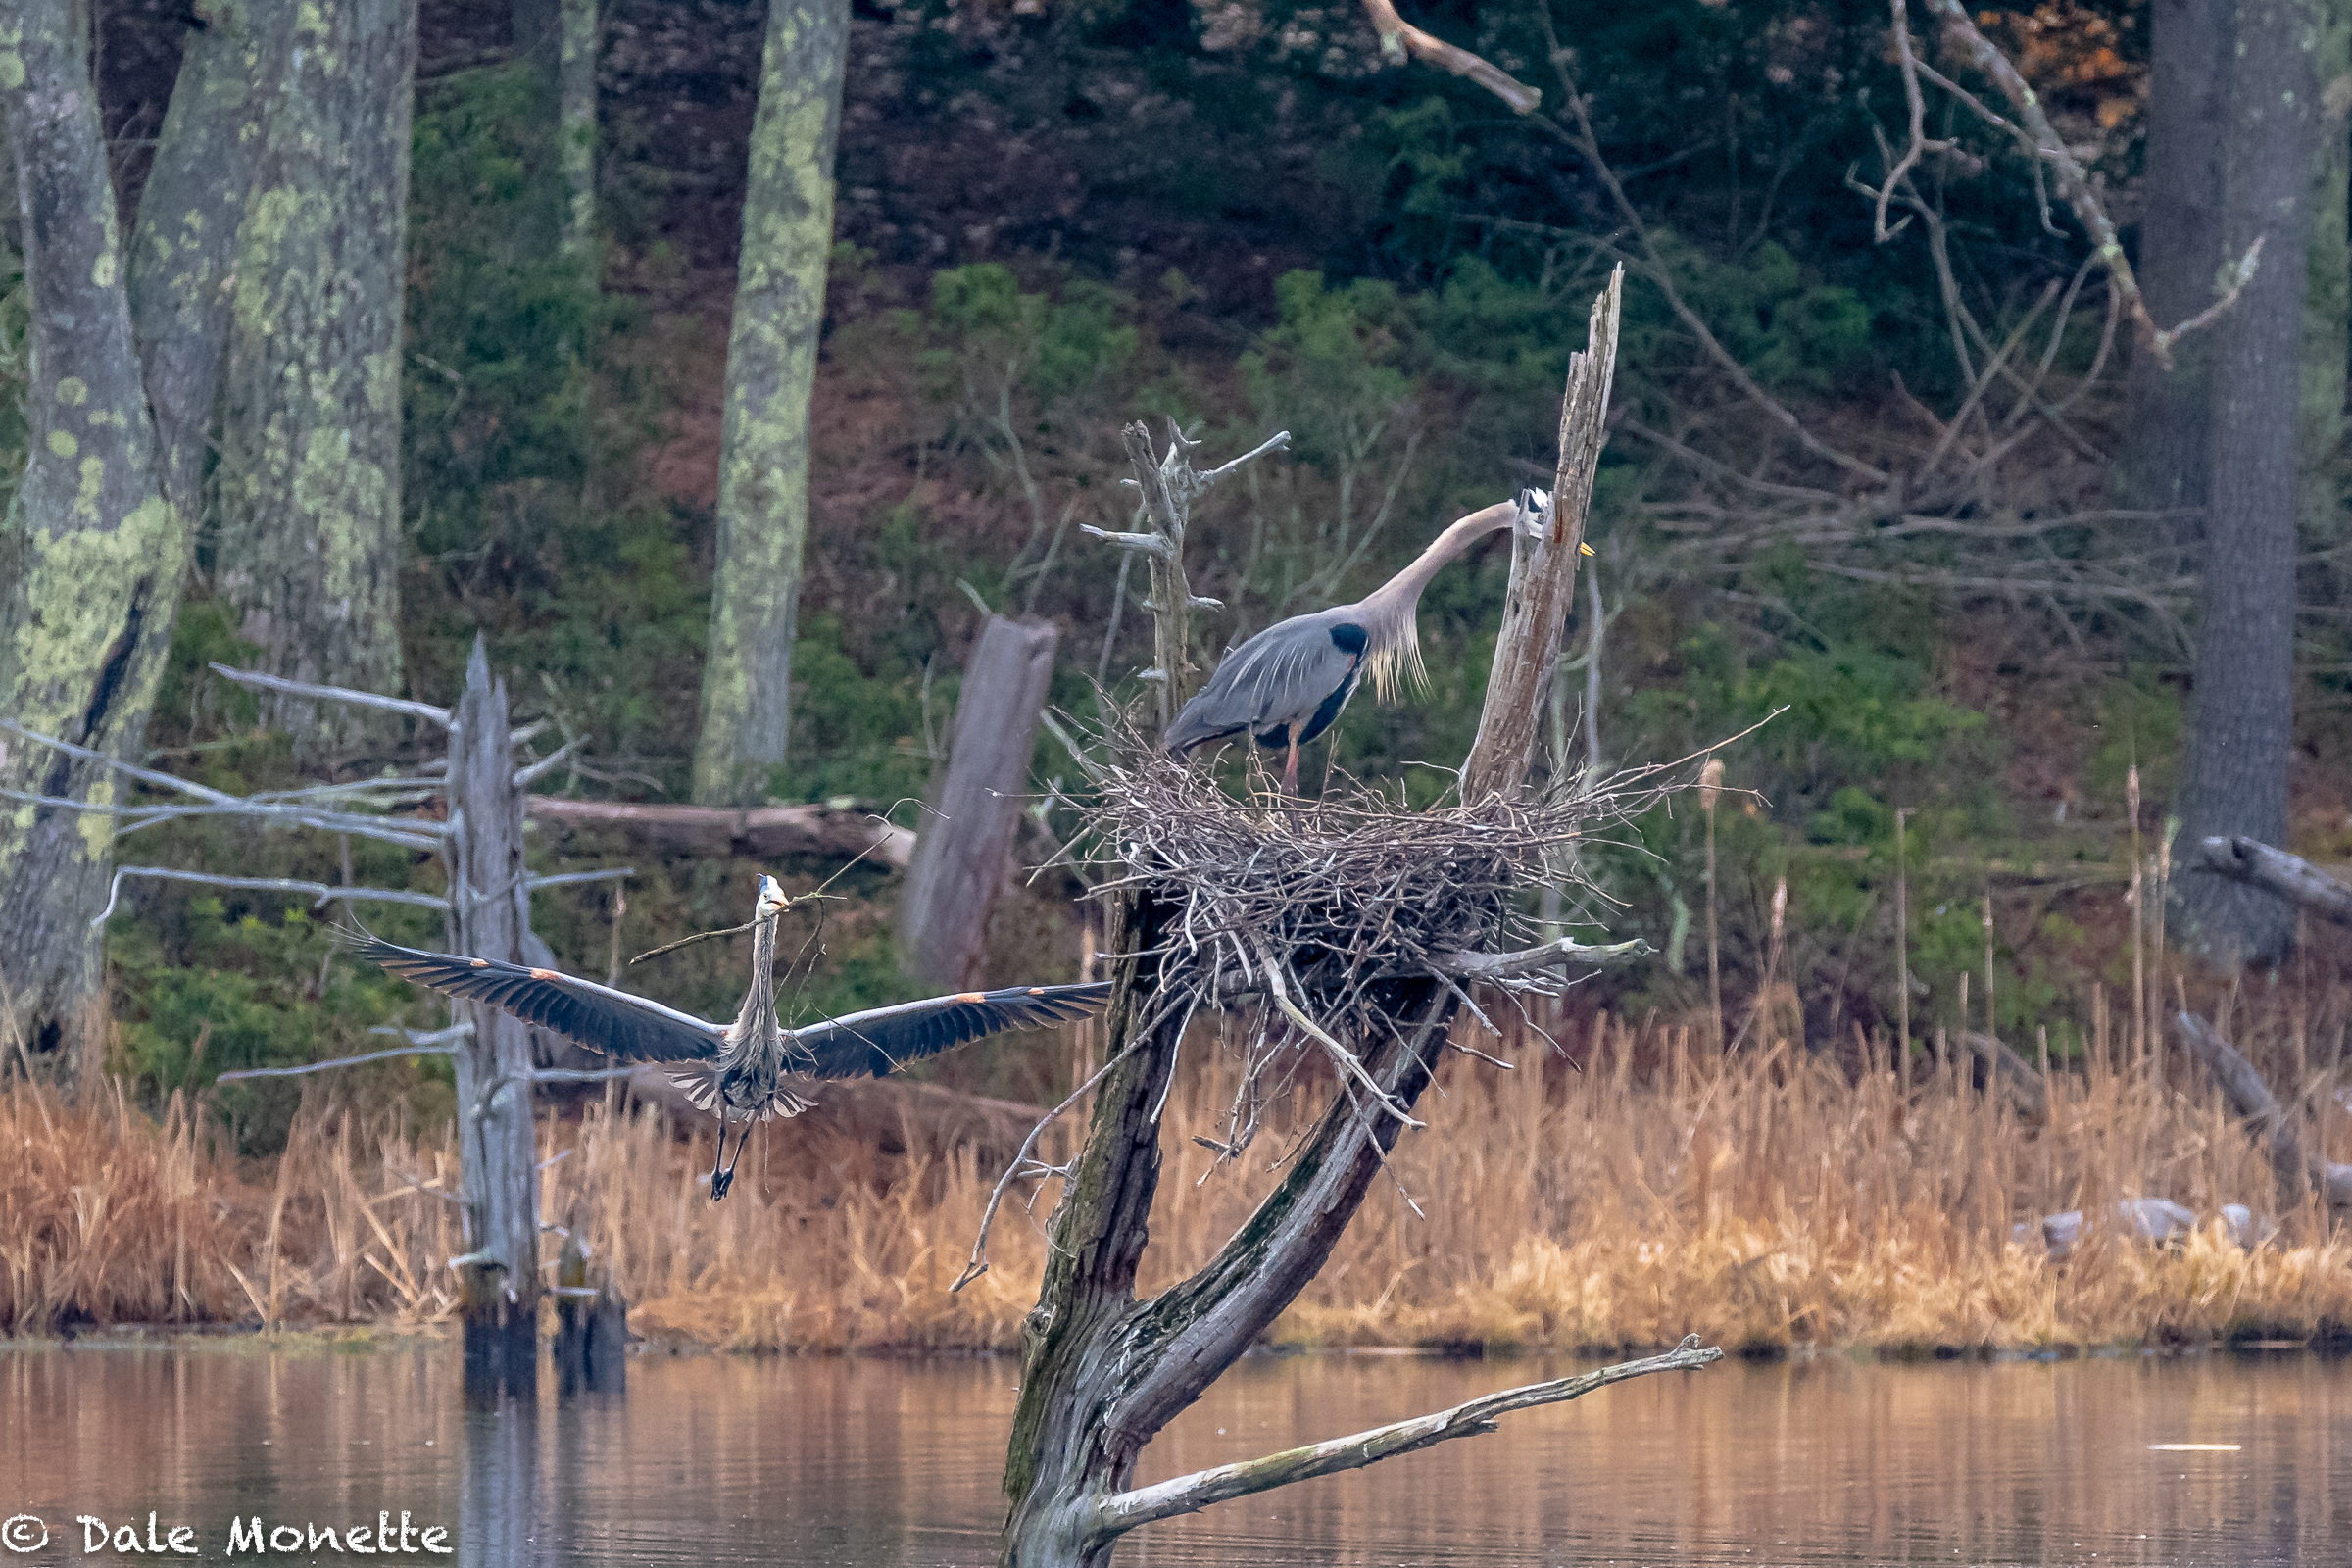 You can see the male great blue heron sneaking up behind the female to deliver her another stick to place in the nest. He collects, and she places as in all GBH pairs.